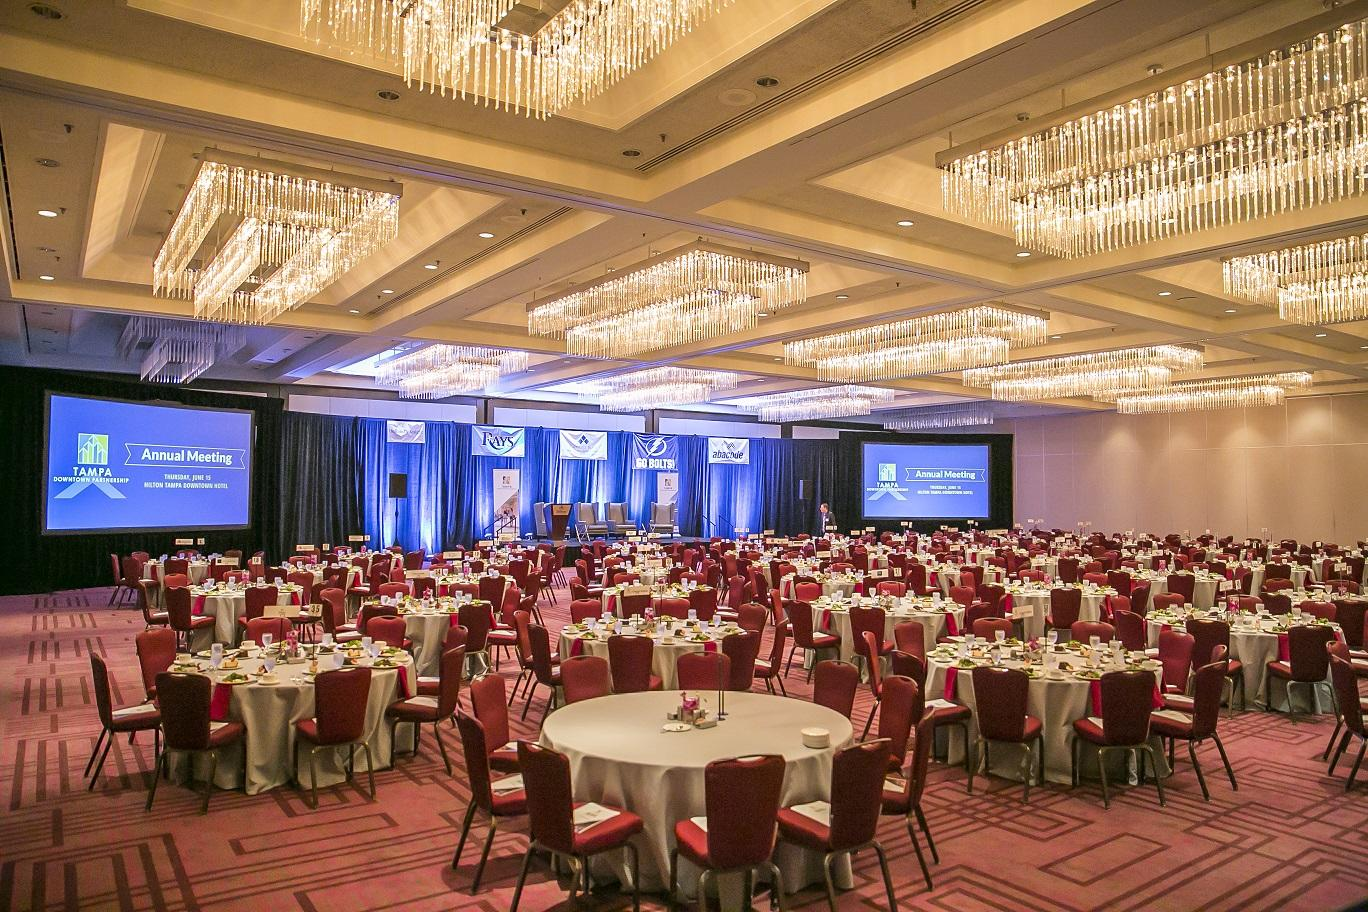 32nd Annual Meeting and Luncheon